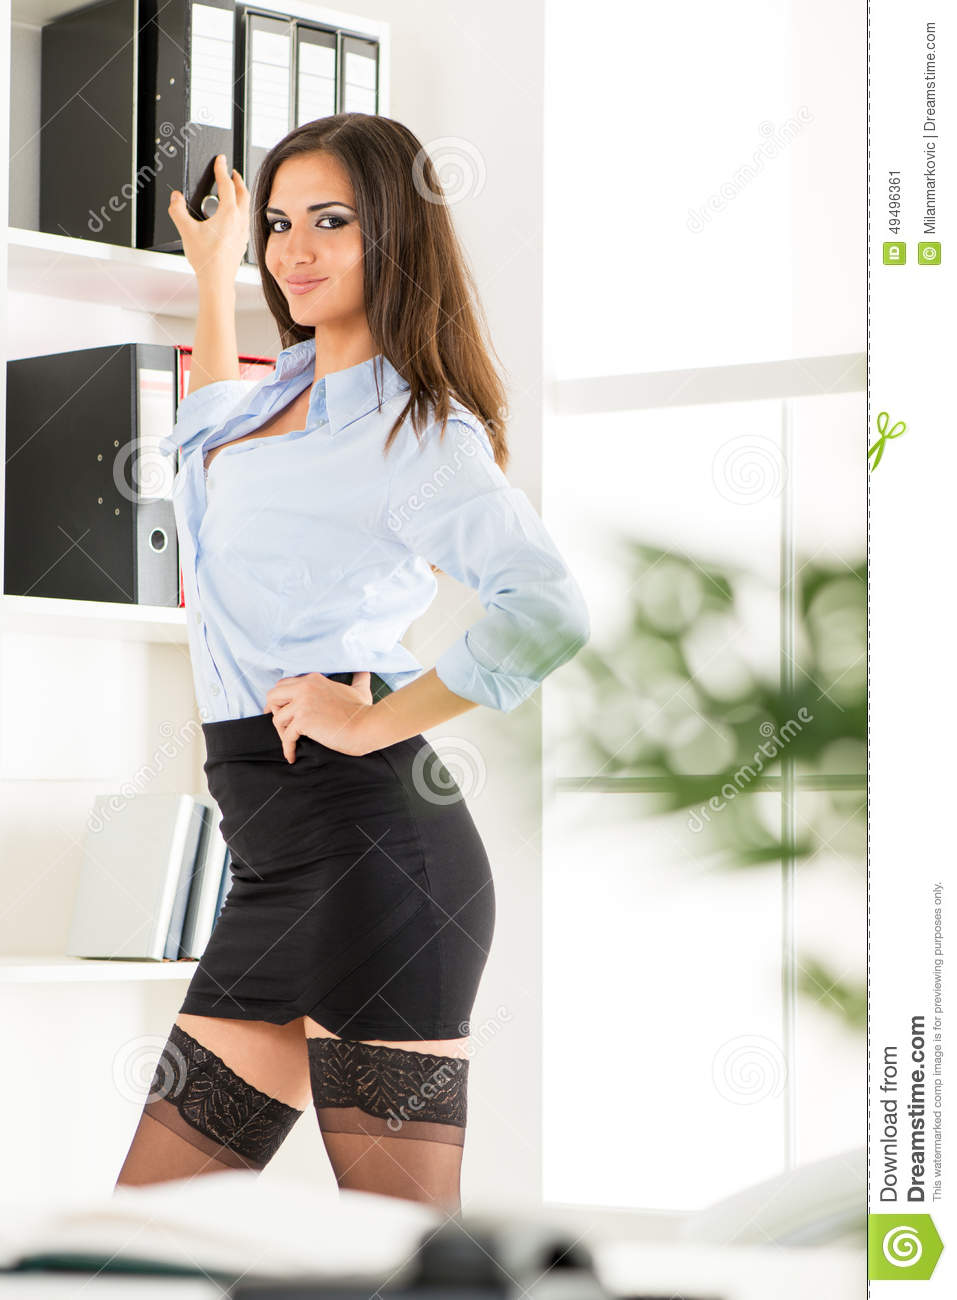 skirt secretary pinterest Short